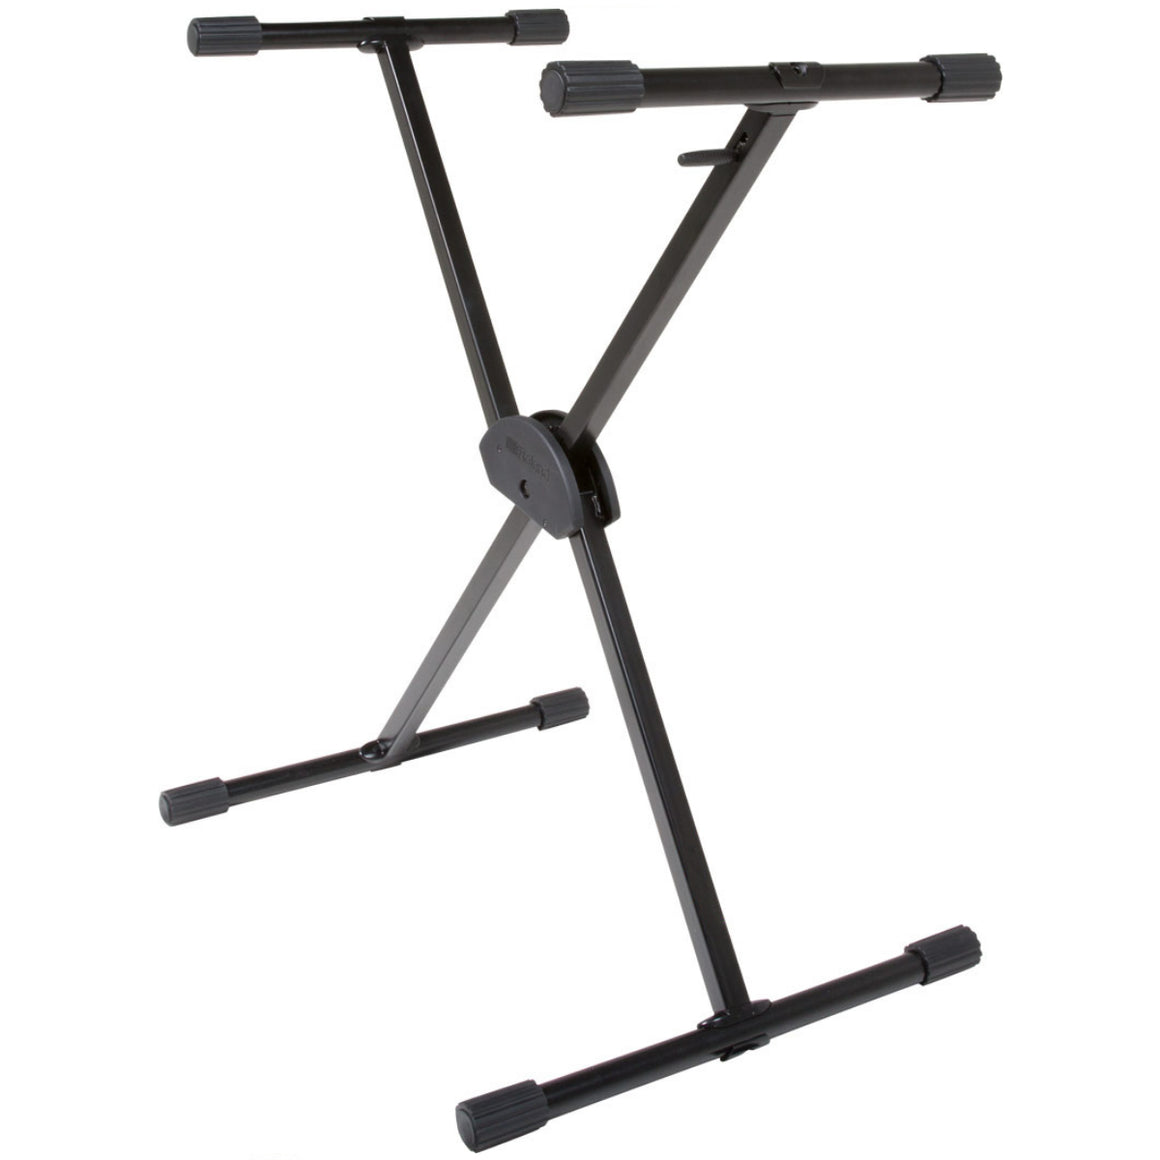 Roland KS-10X Single-Brace Keyboard Stand